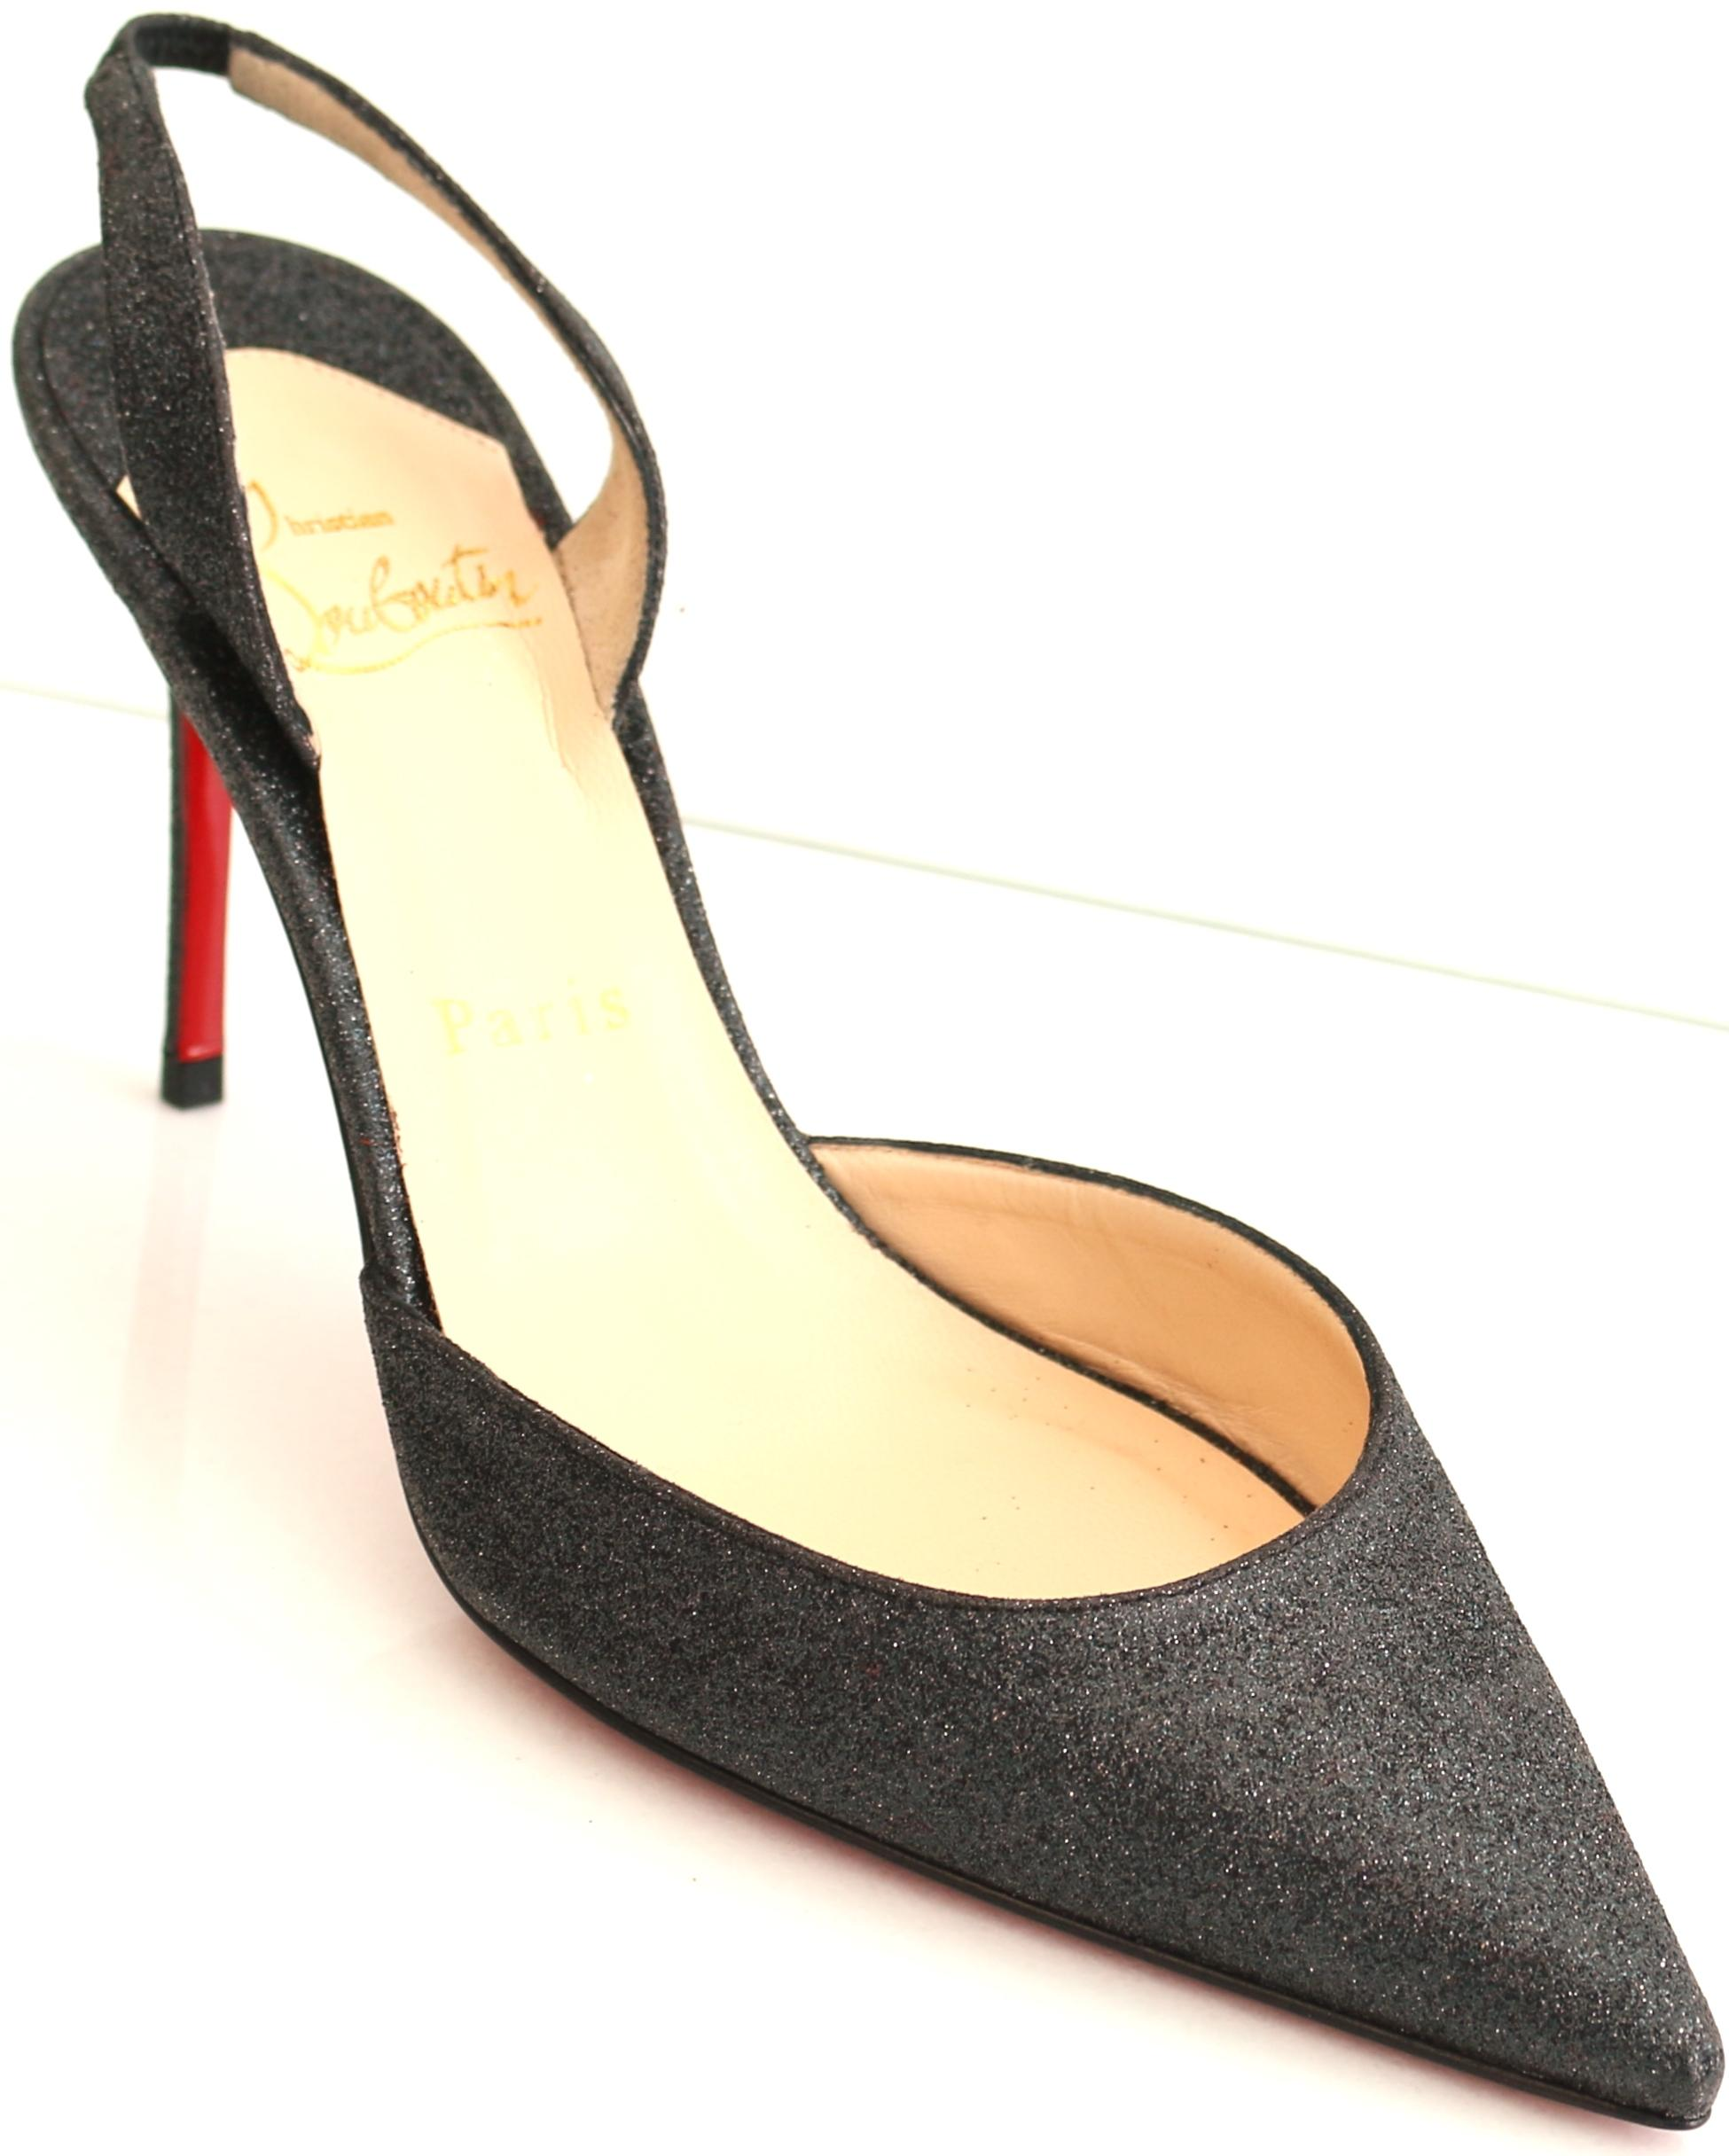 footaction cheap online footlocker pictures cheap online Christian Louboutin Ever 85 Pumps w/ Tags discount online clearance store online free shipping brand new unisex EPGbi4E